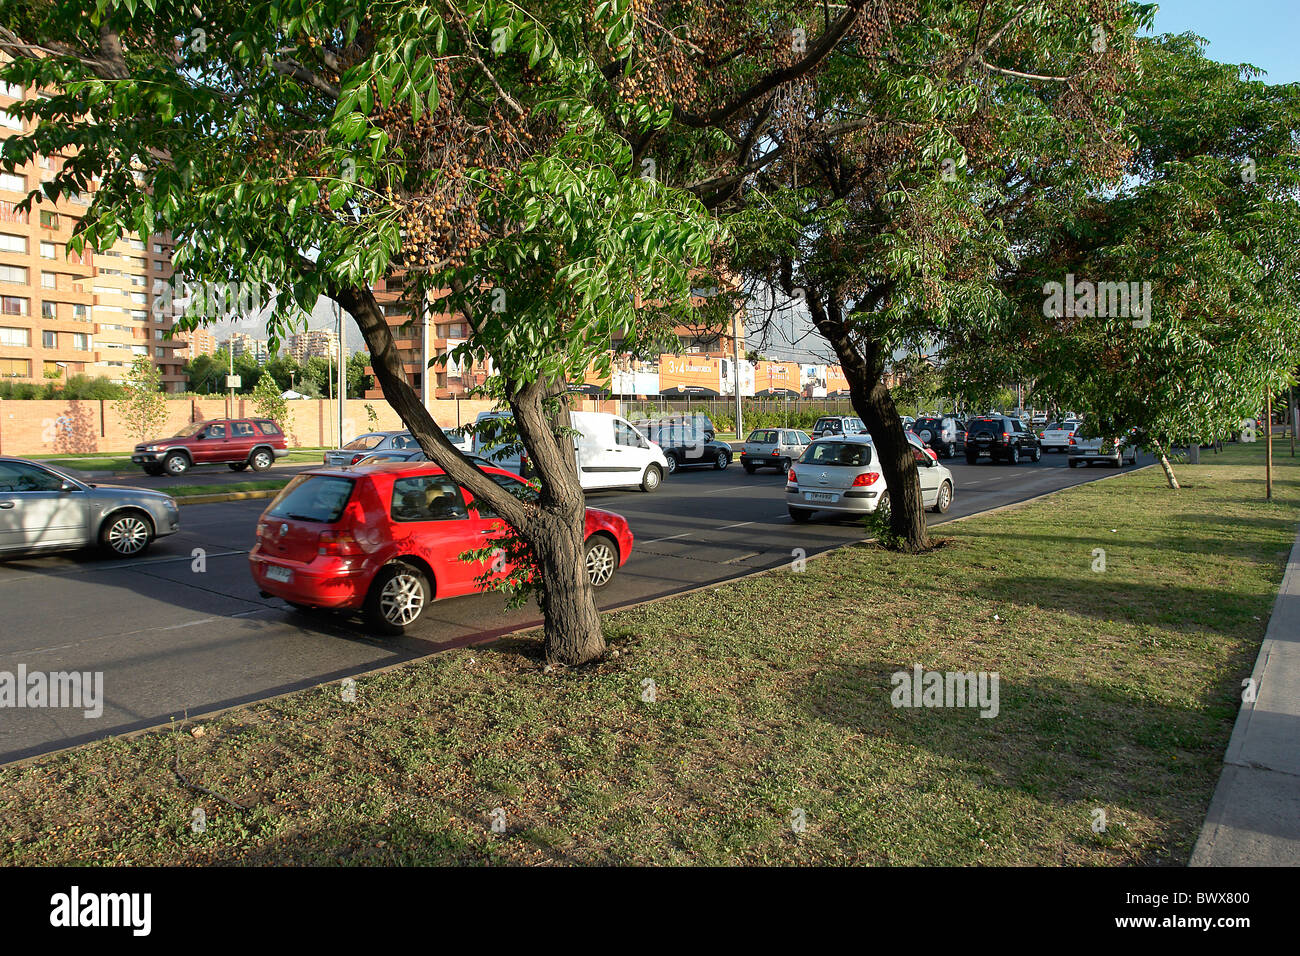 High congestion of cars in the city of Santiago - Stock Image